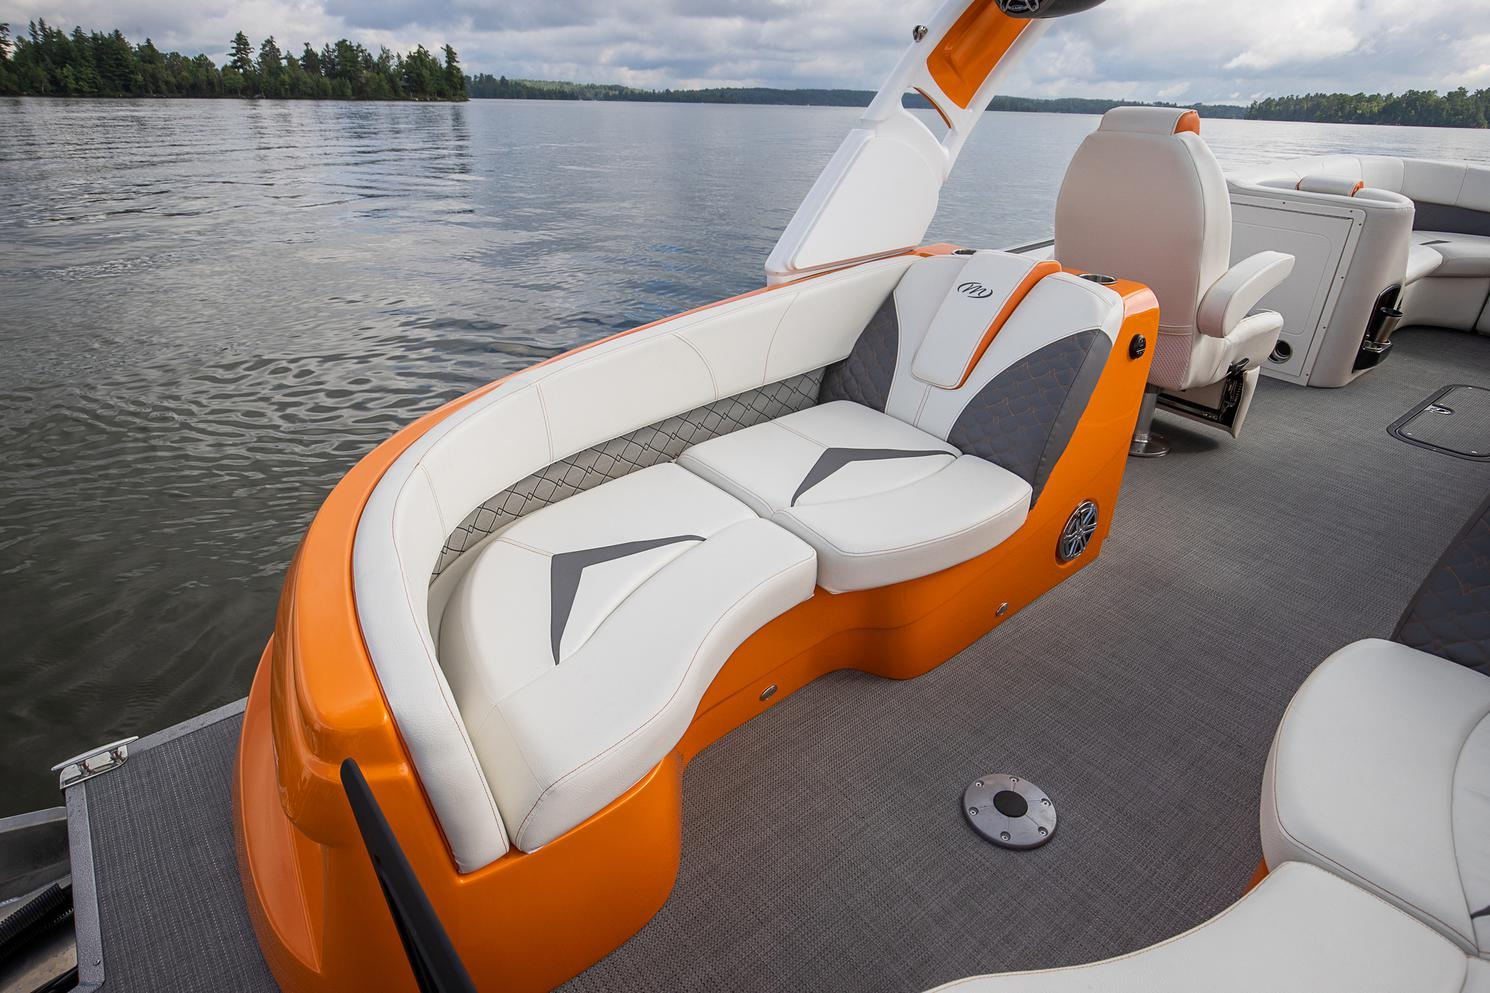 2021 Manitou Pontoon boat for sale, model of the boat is LX & Image # 13 of 15